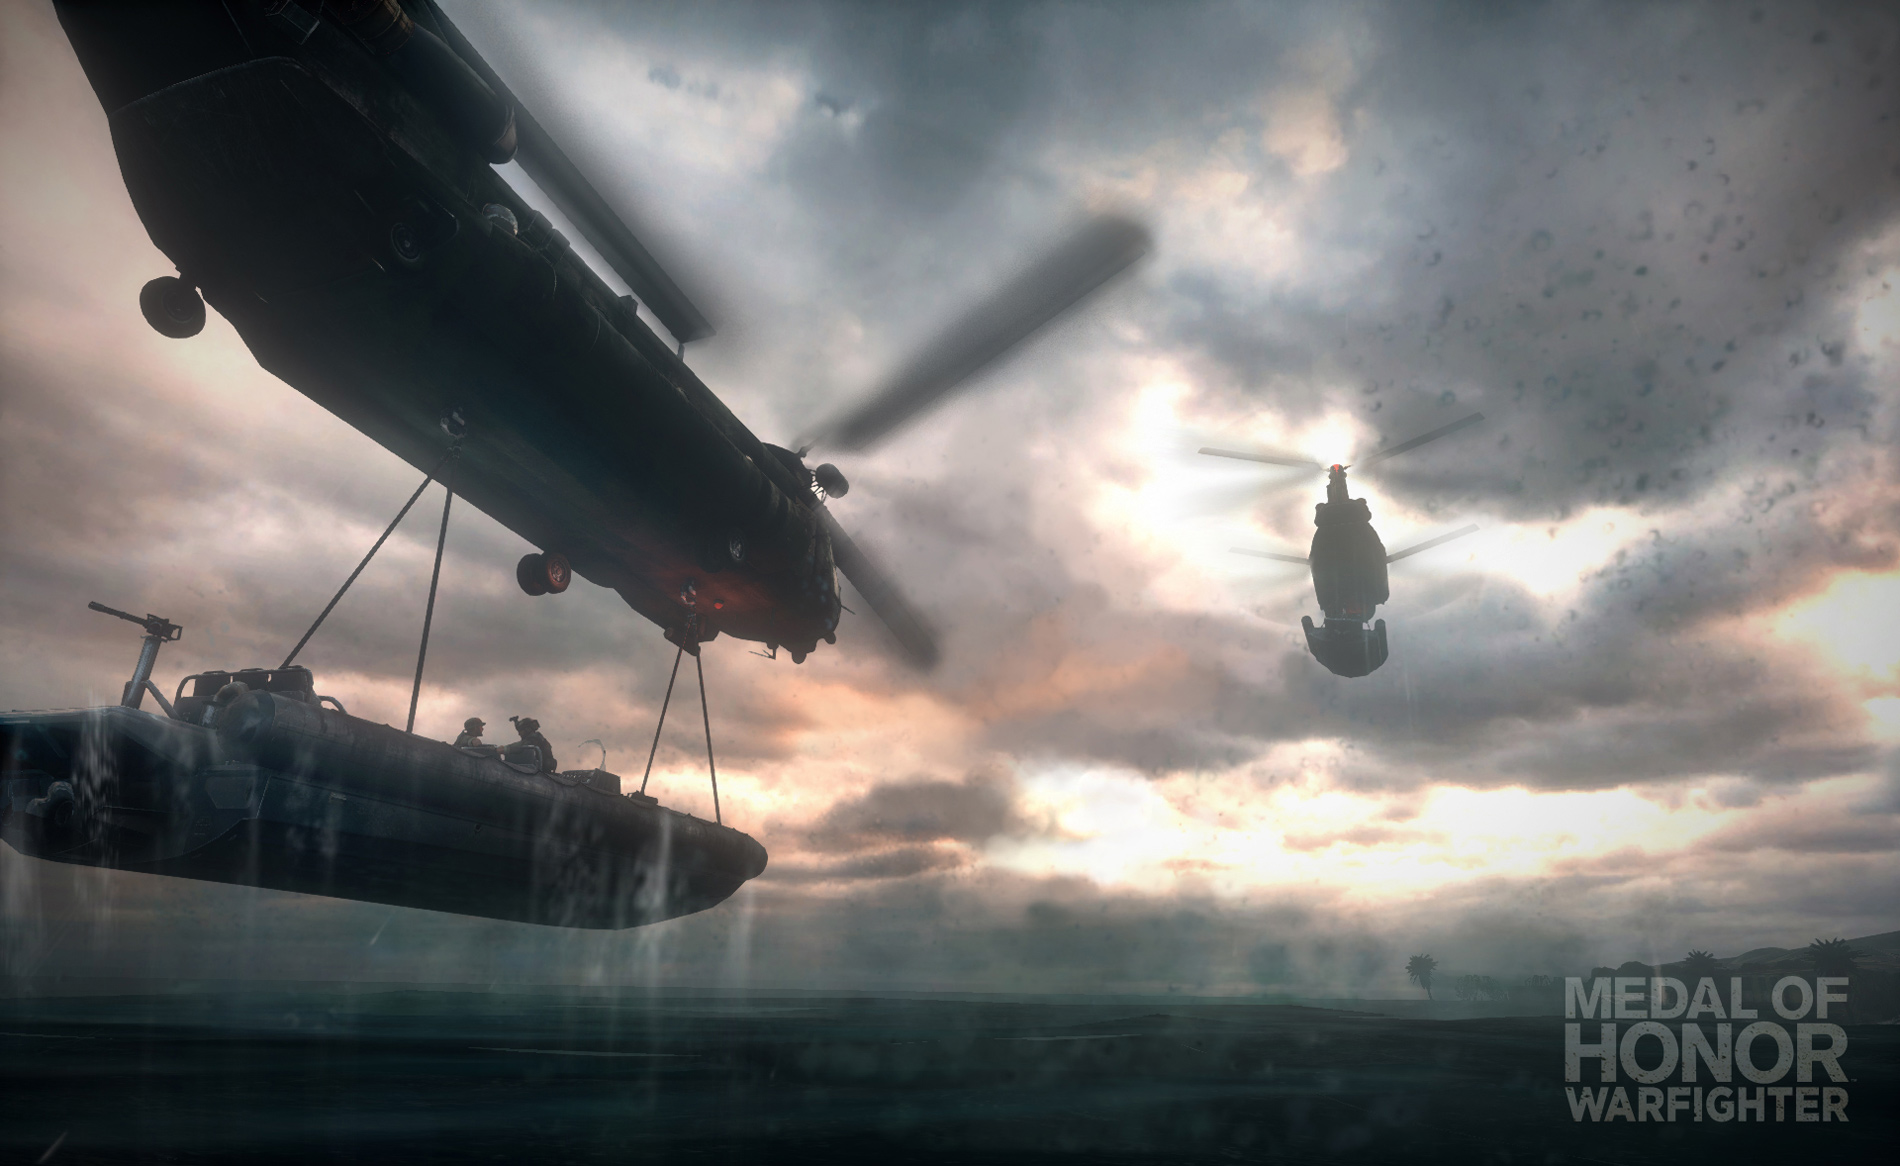 Medal Of Honor: Warfighter Weapons And Equipment Details